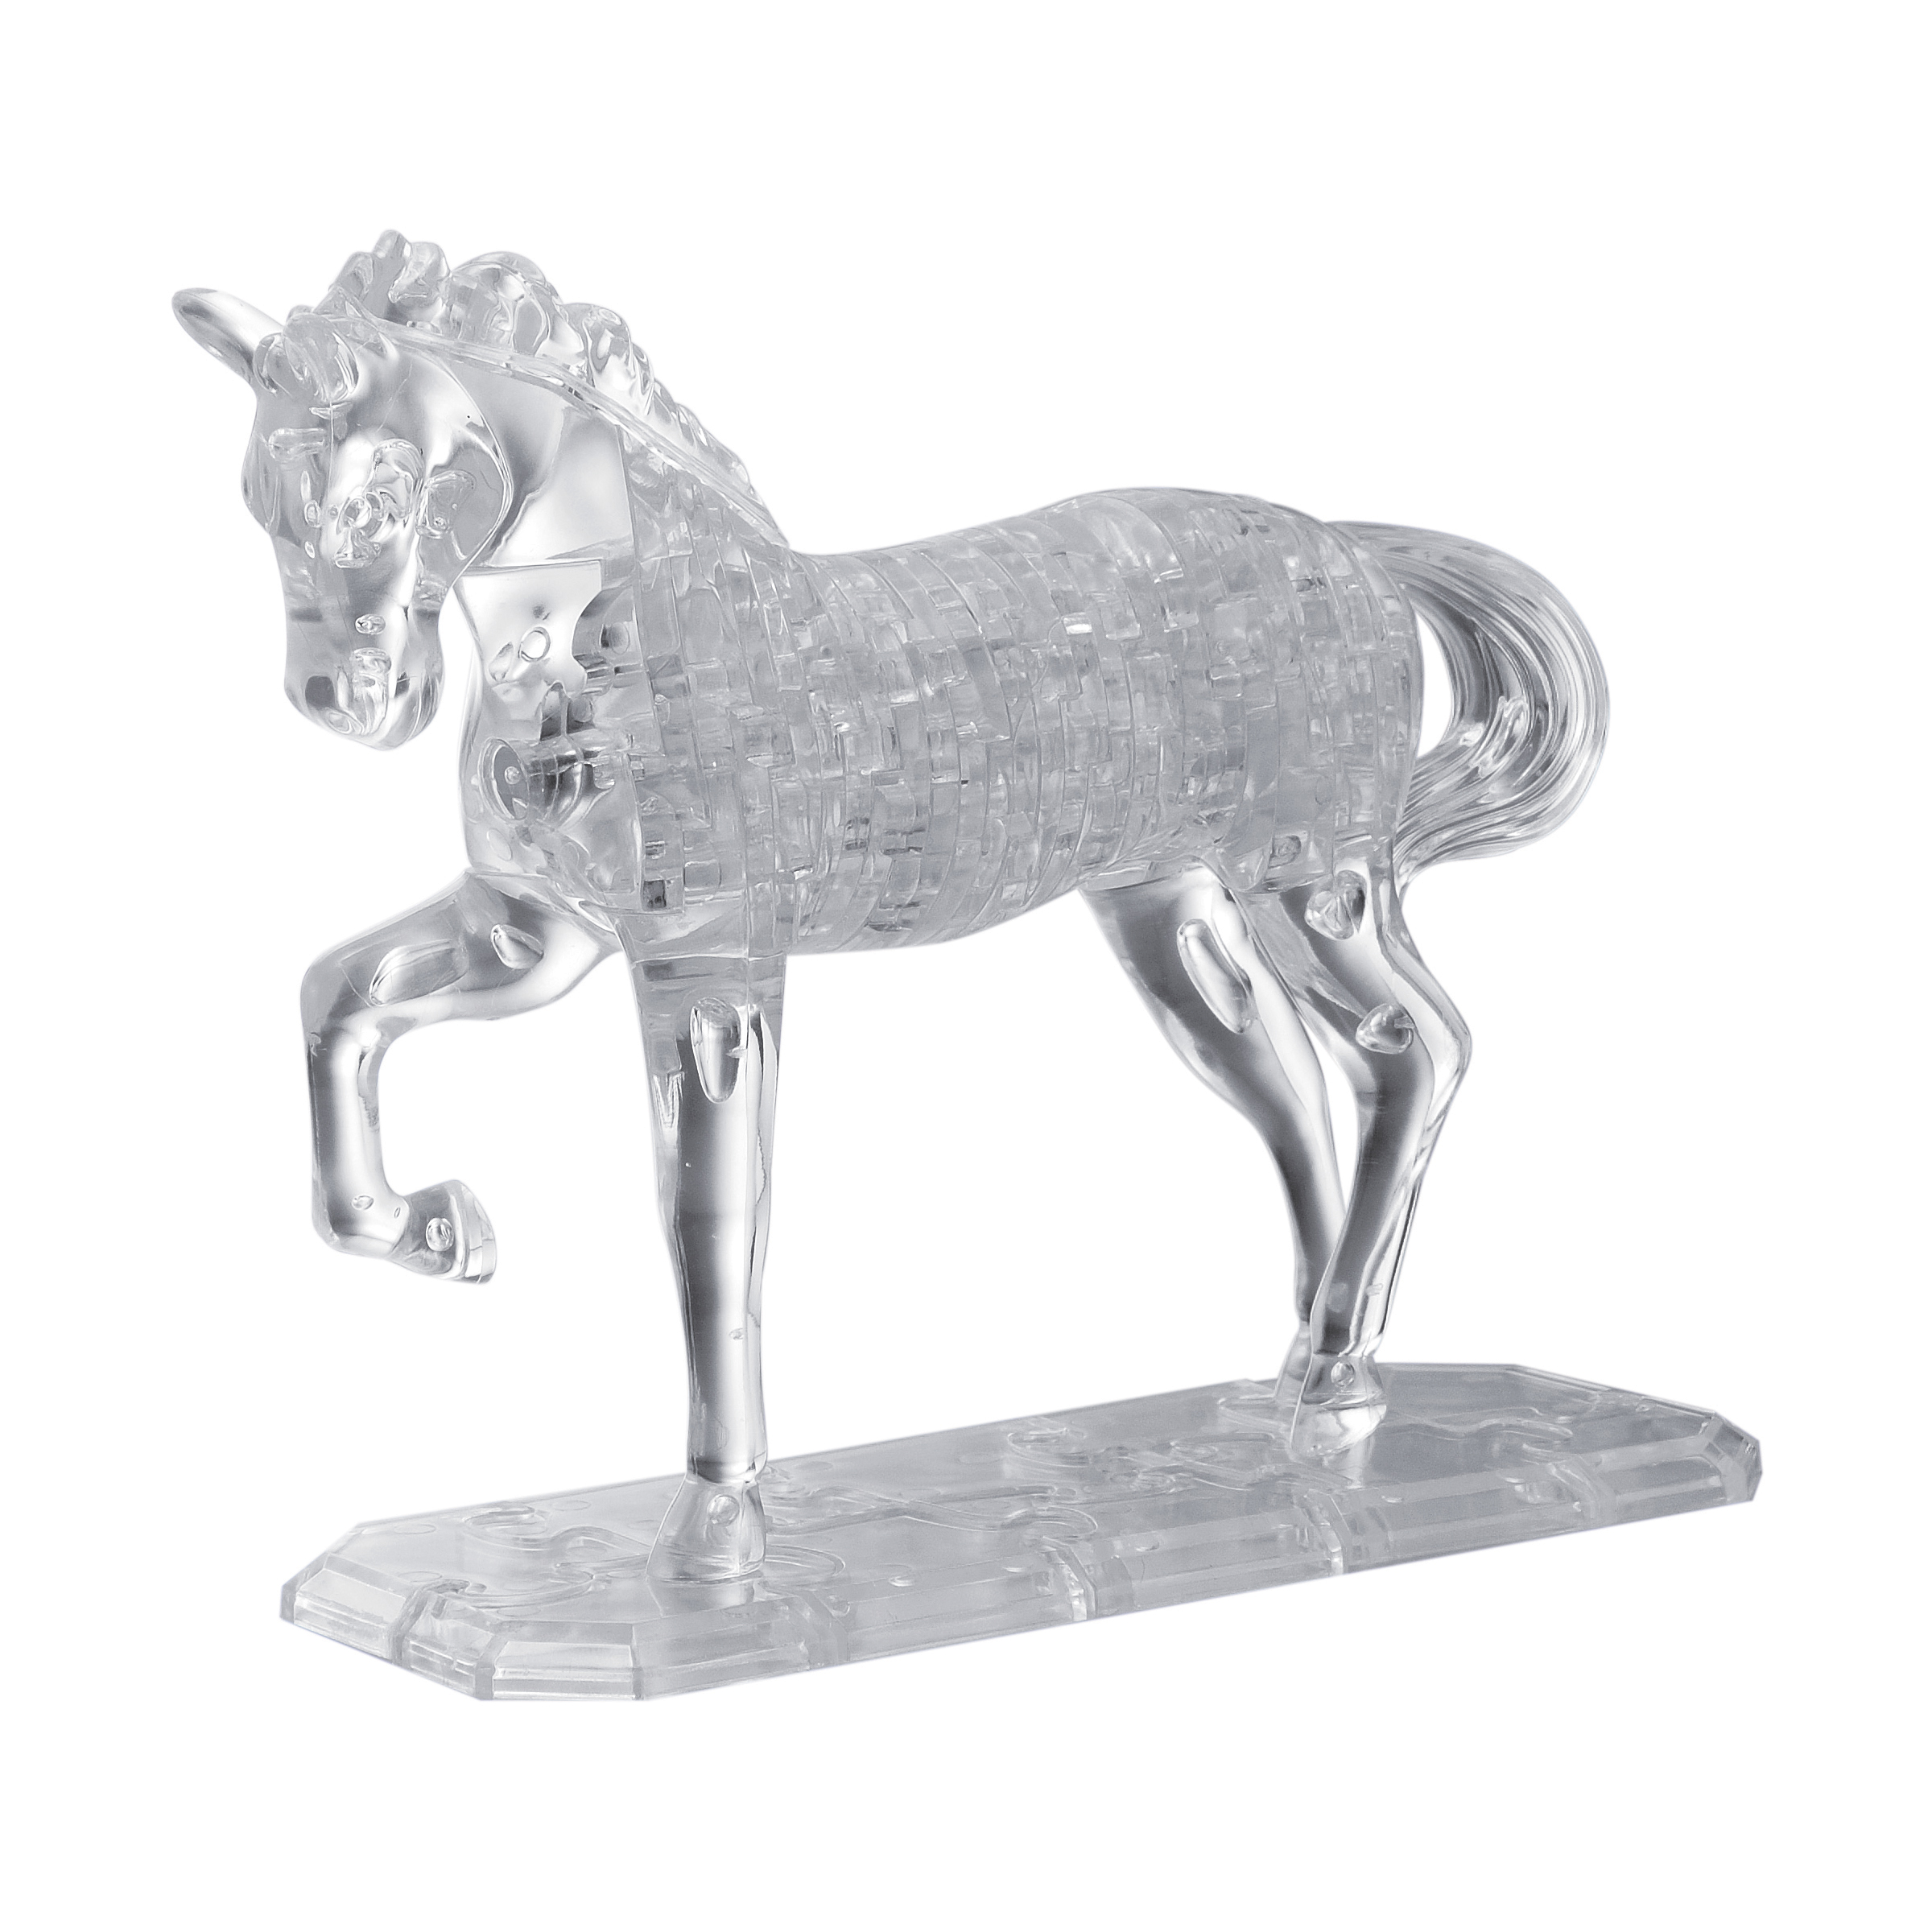 Deluxe 3D Crystal Puzzle - Horse (White), 98 Pcs